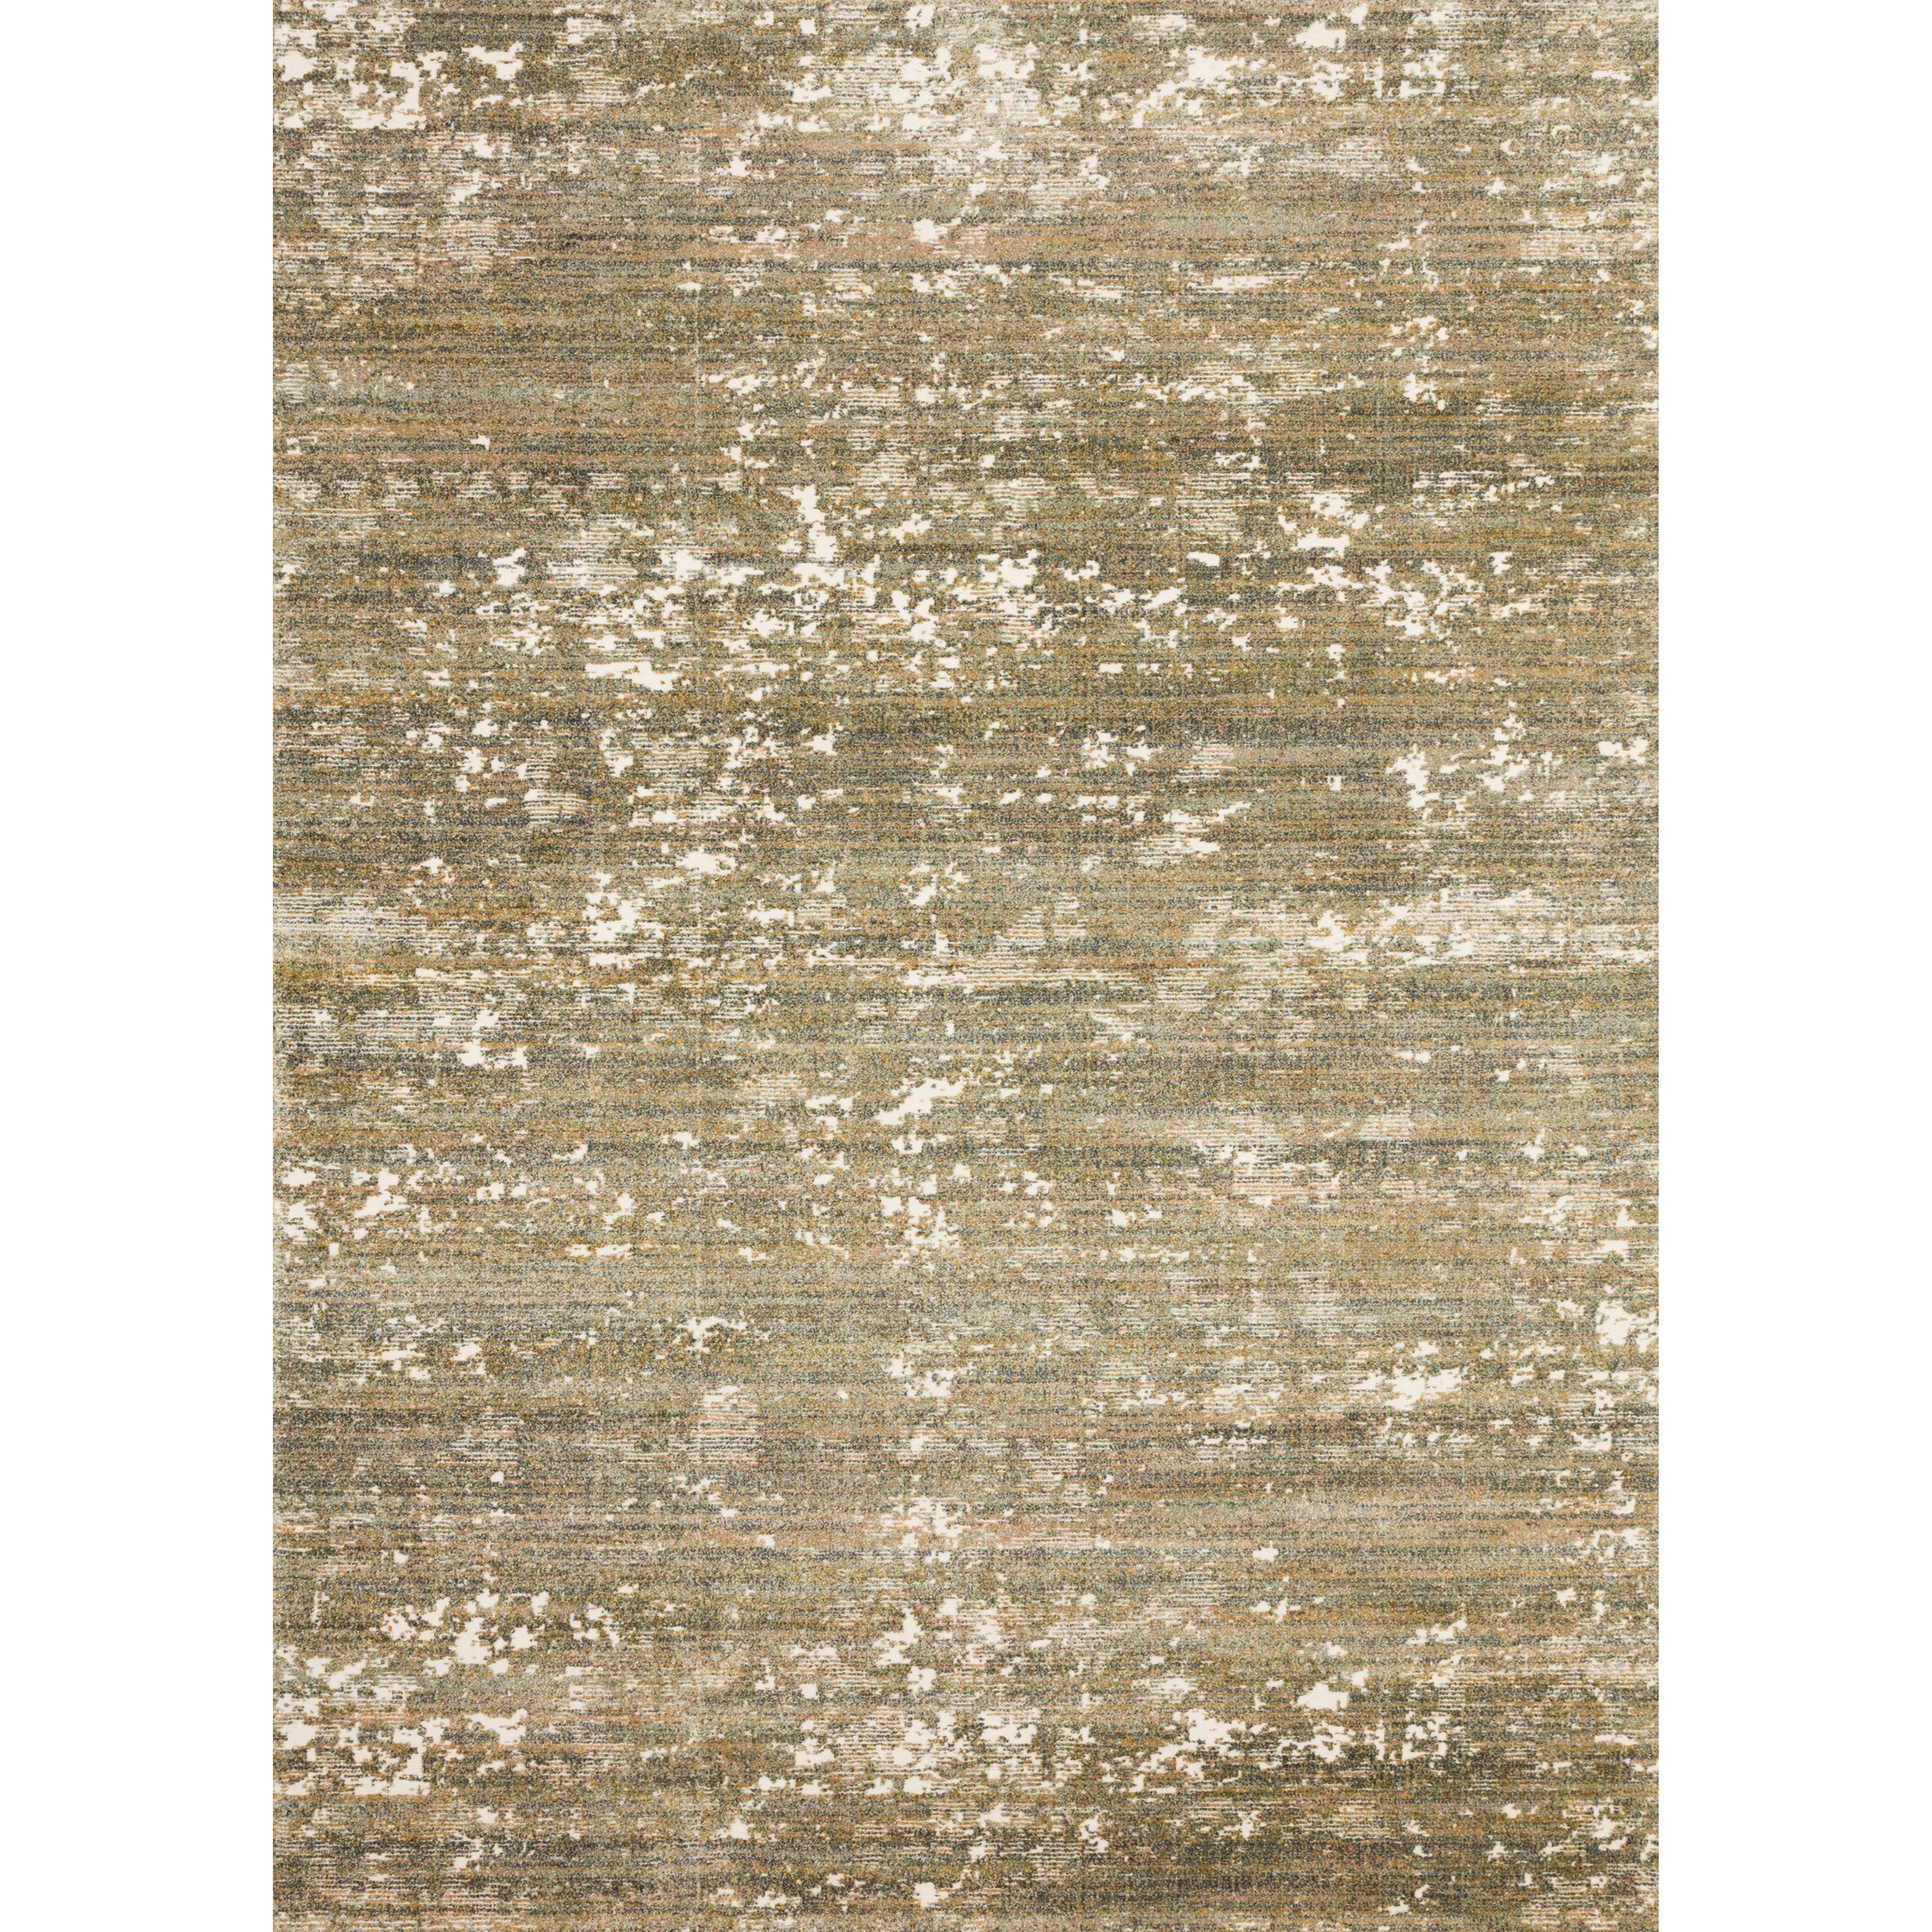 """Augustus 1'6"""" x 1'6""""  Moss / Spice Rug by Loloi Rugs at Virginia Furniture Market"""